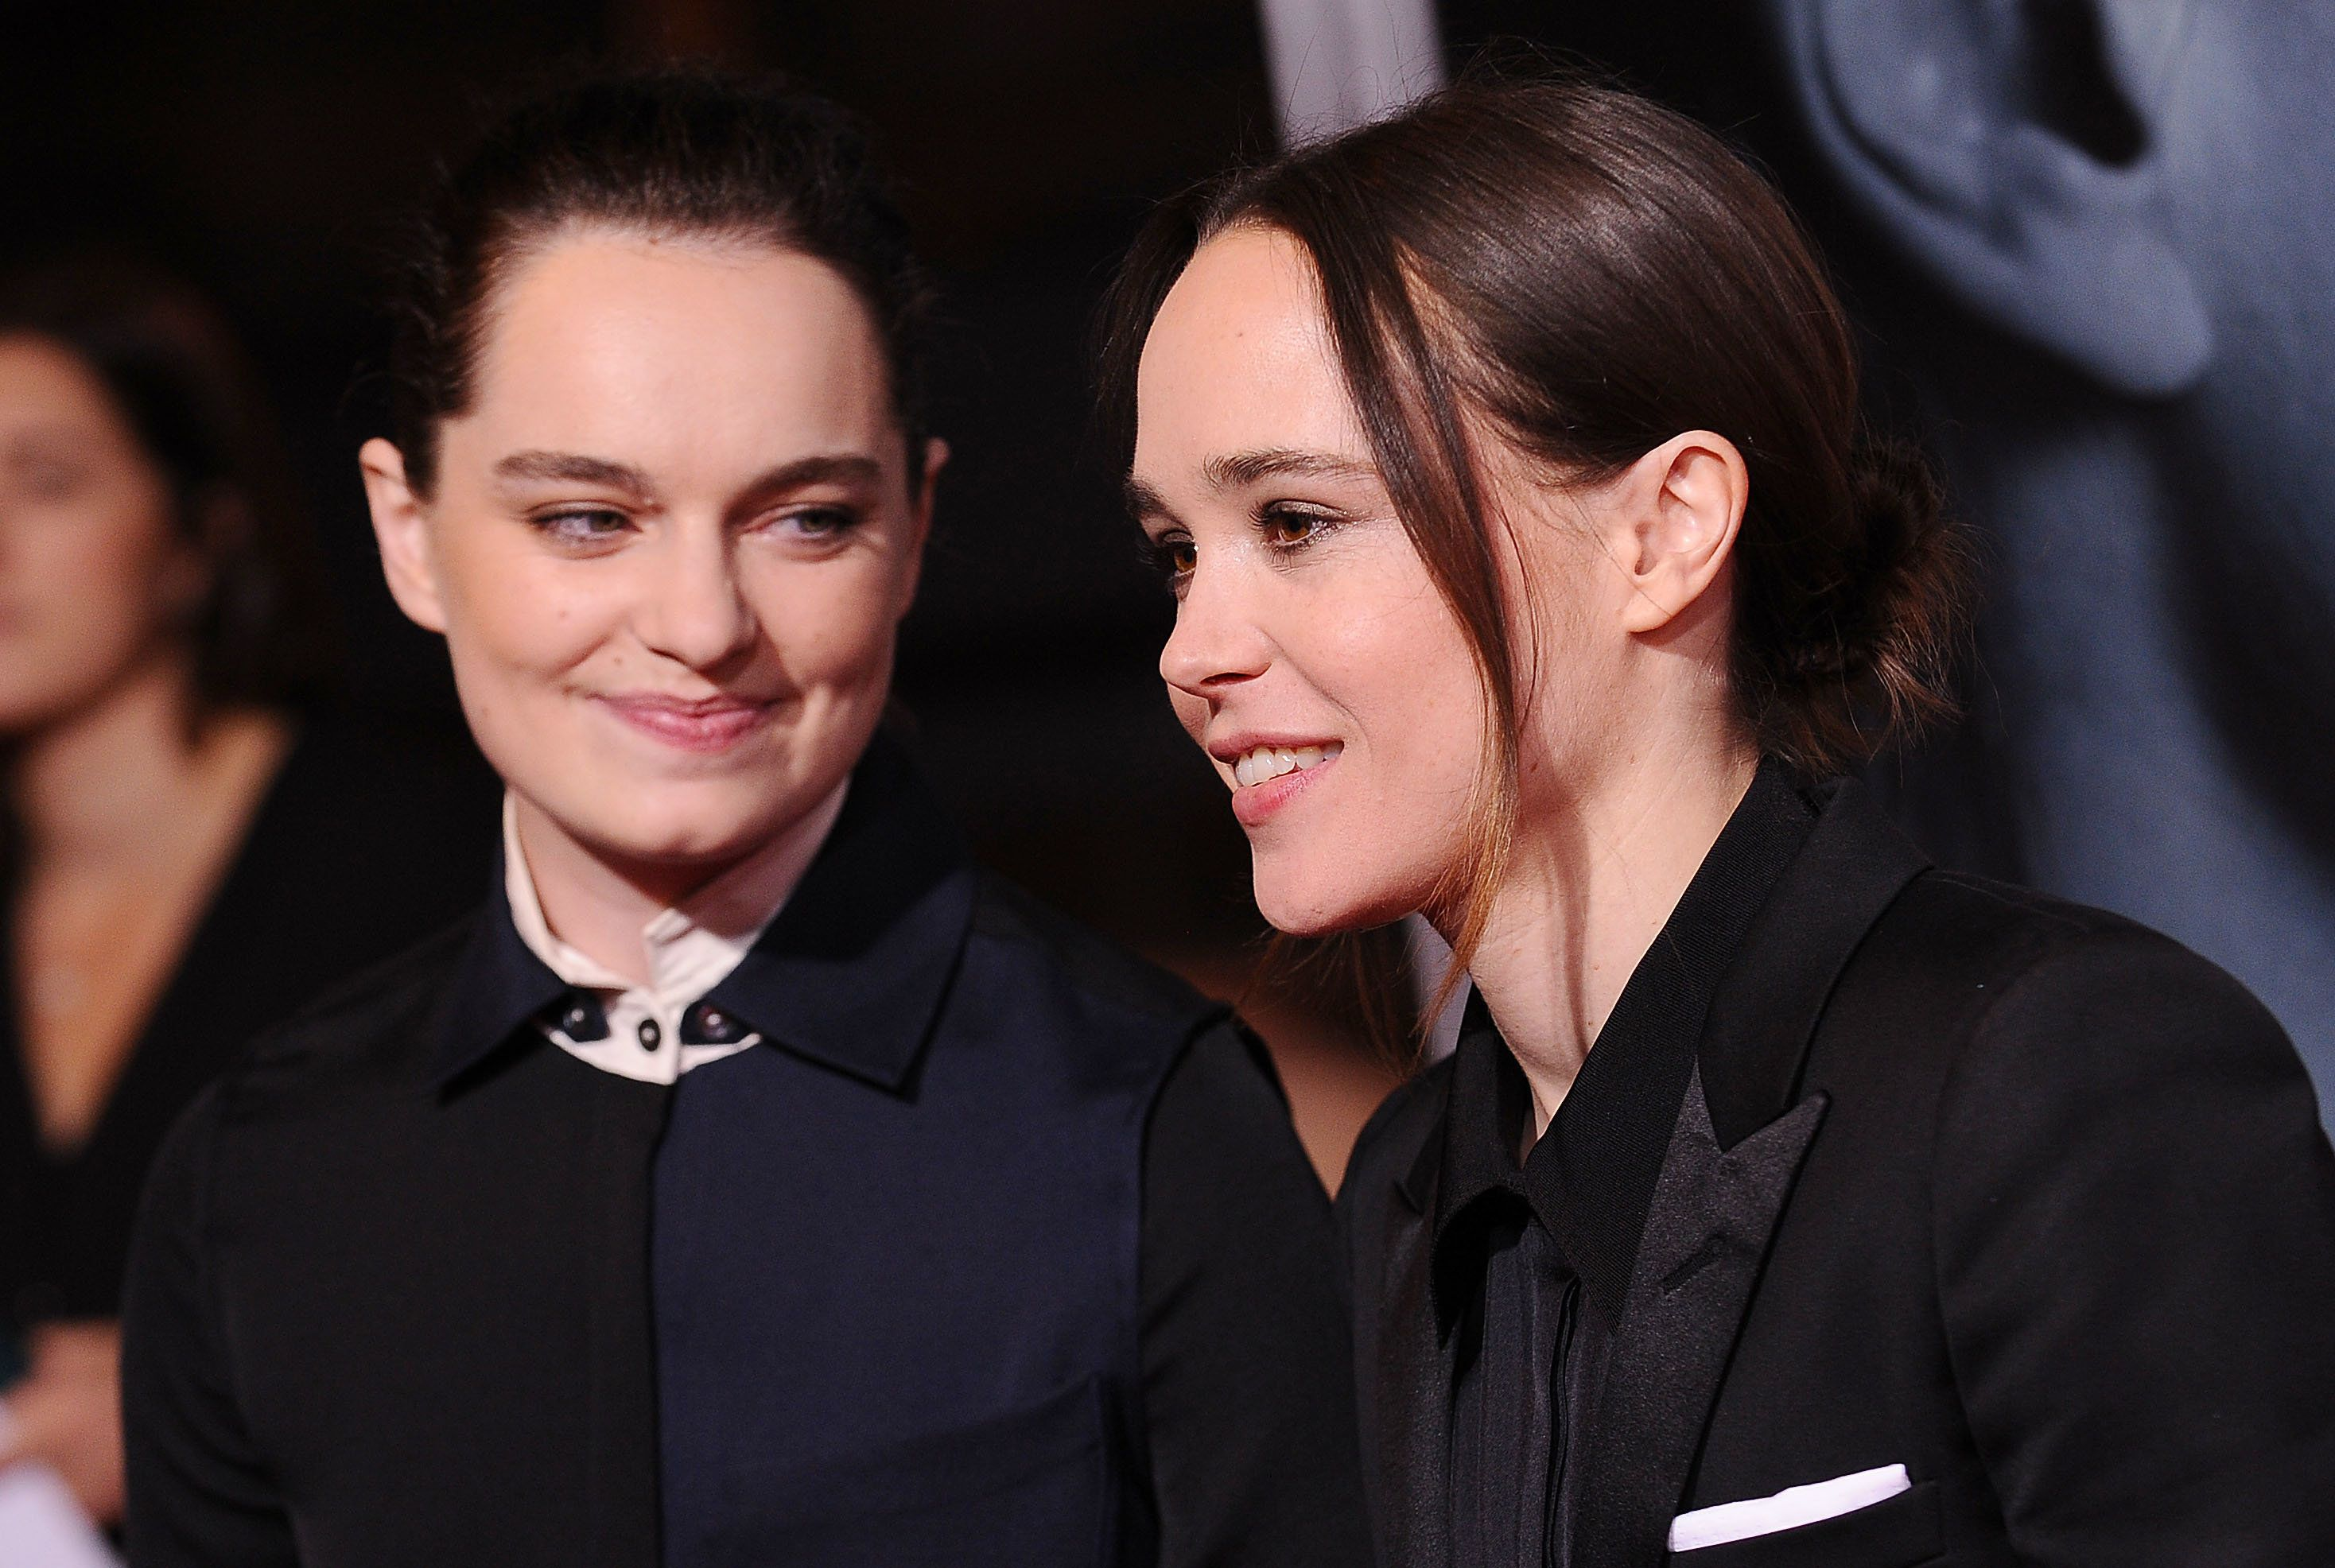 LOS ANGELES, CA - SEPTEMBER 27:  Emma Portner and Ellen Page attend the premiere of 'Flatliners' at The Theatre at Ace Hotel on September 27, 2017 in Los Angeles, California.  (Photo by Jason LaVeris/FilmMagic)